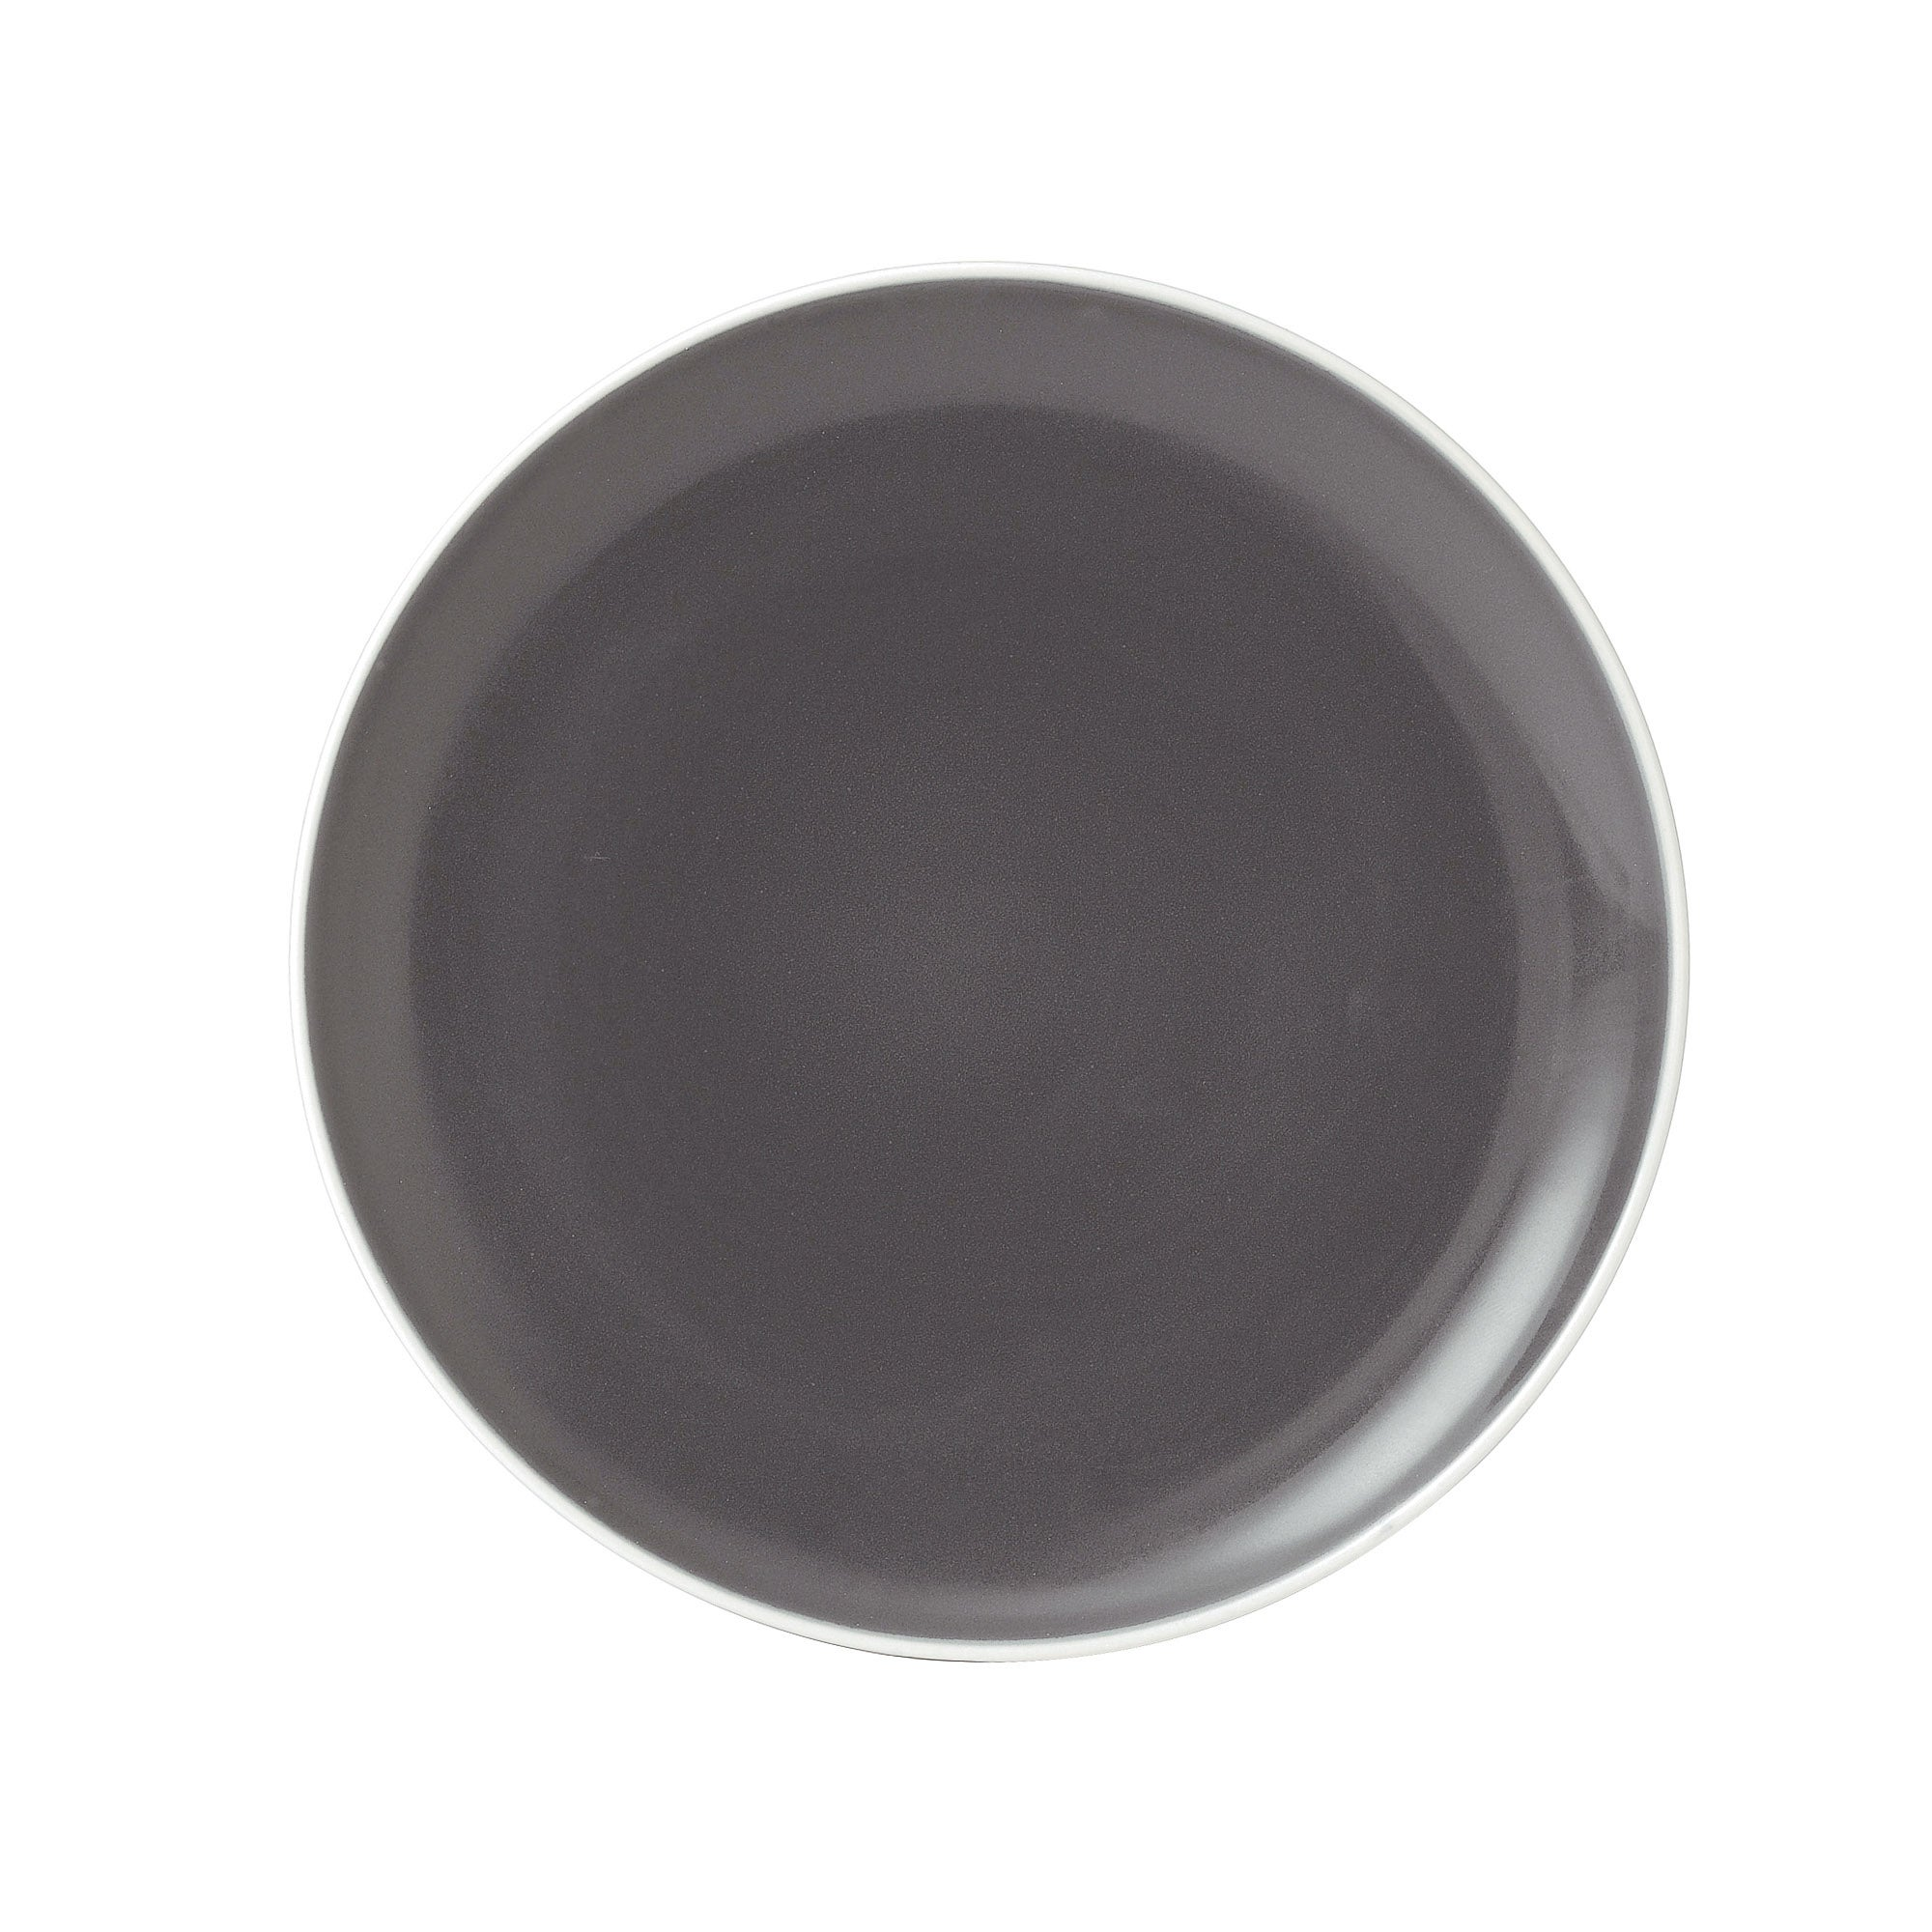 Gordon Ramsay Slate Bread Street Collection Side Plate